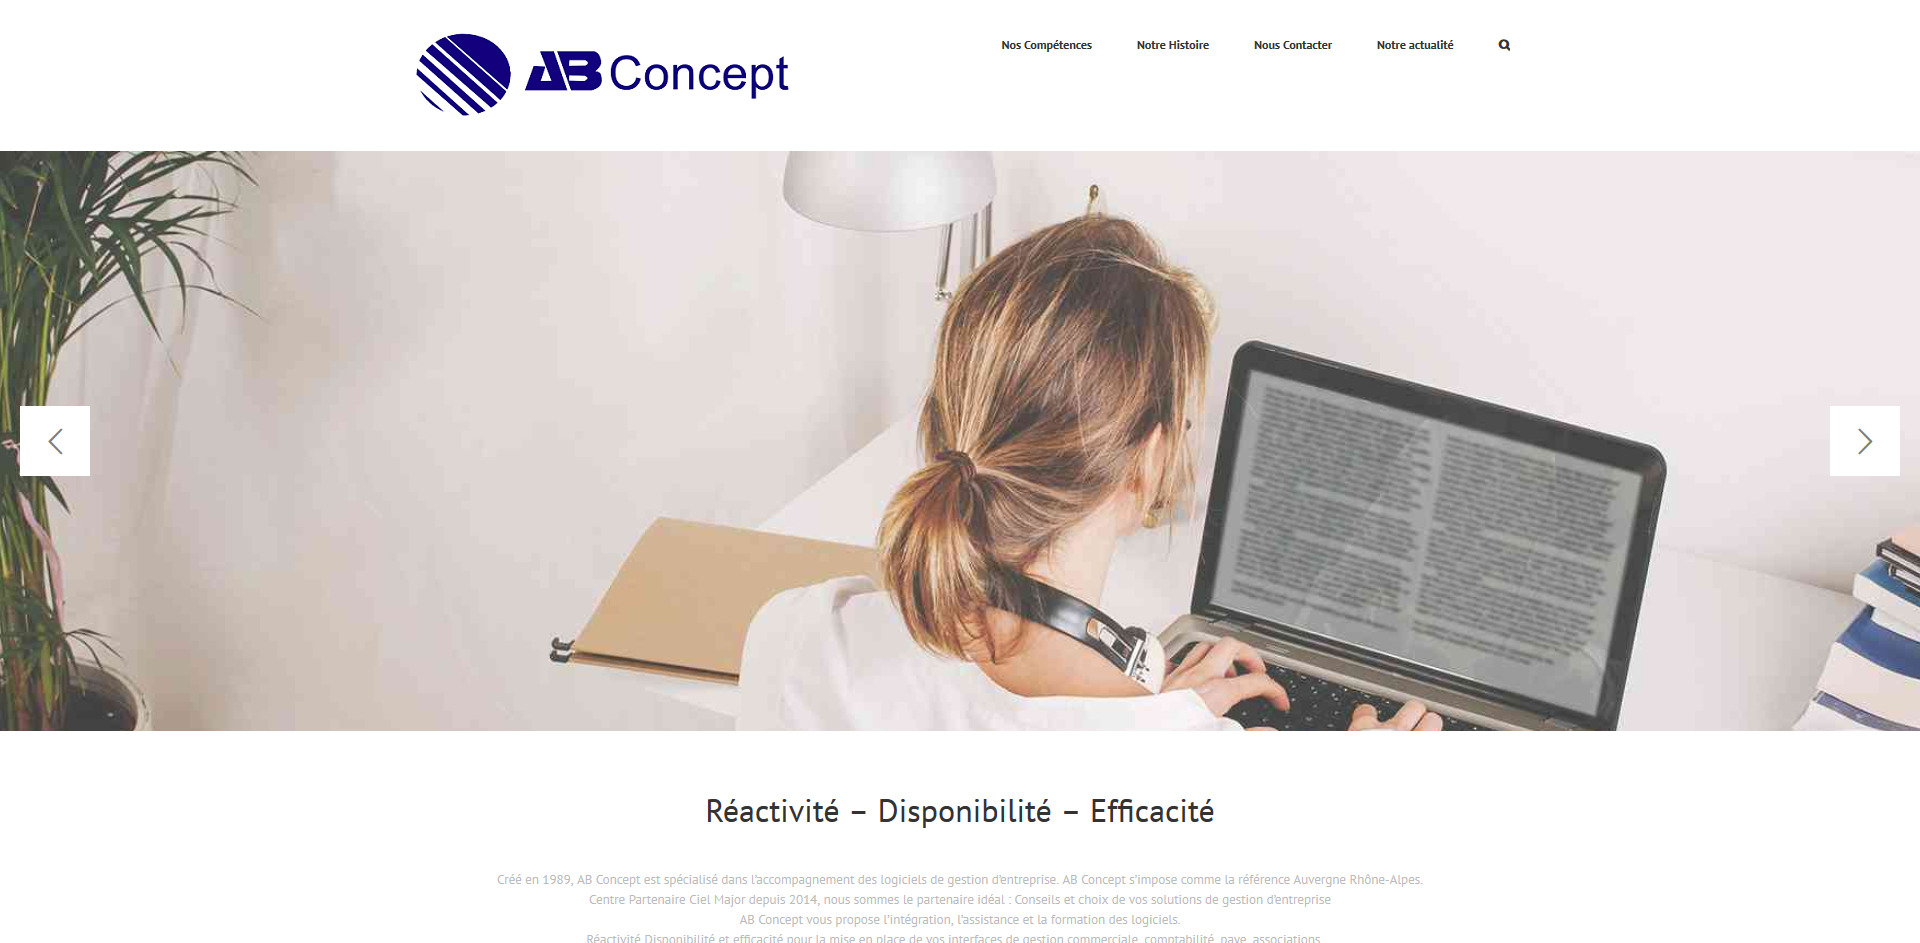 ab concept, informatique , leasy concept, louer mon site, location de site, vente de site internet, site web, lyon, rhone alpes, creation de site internet